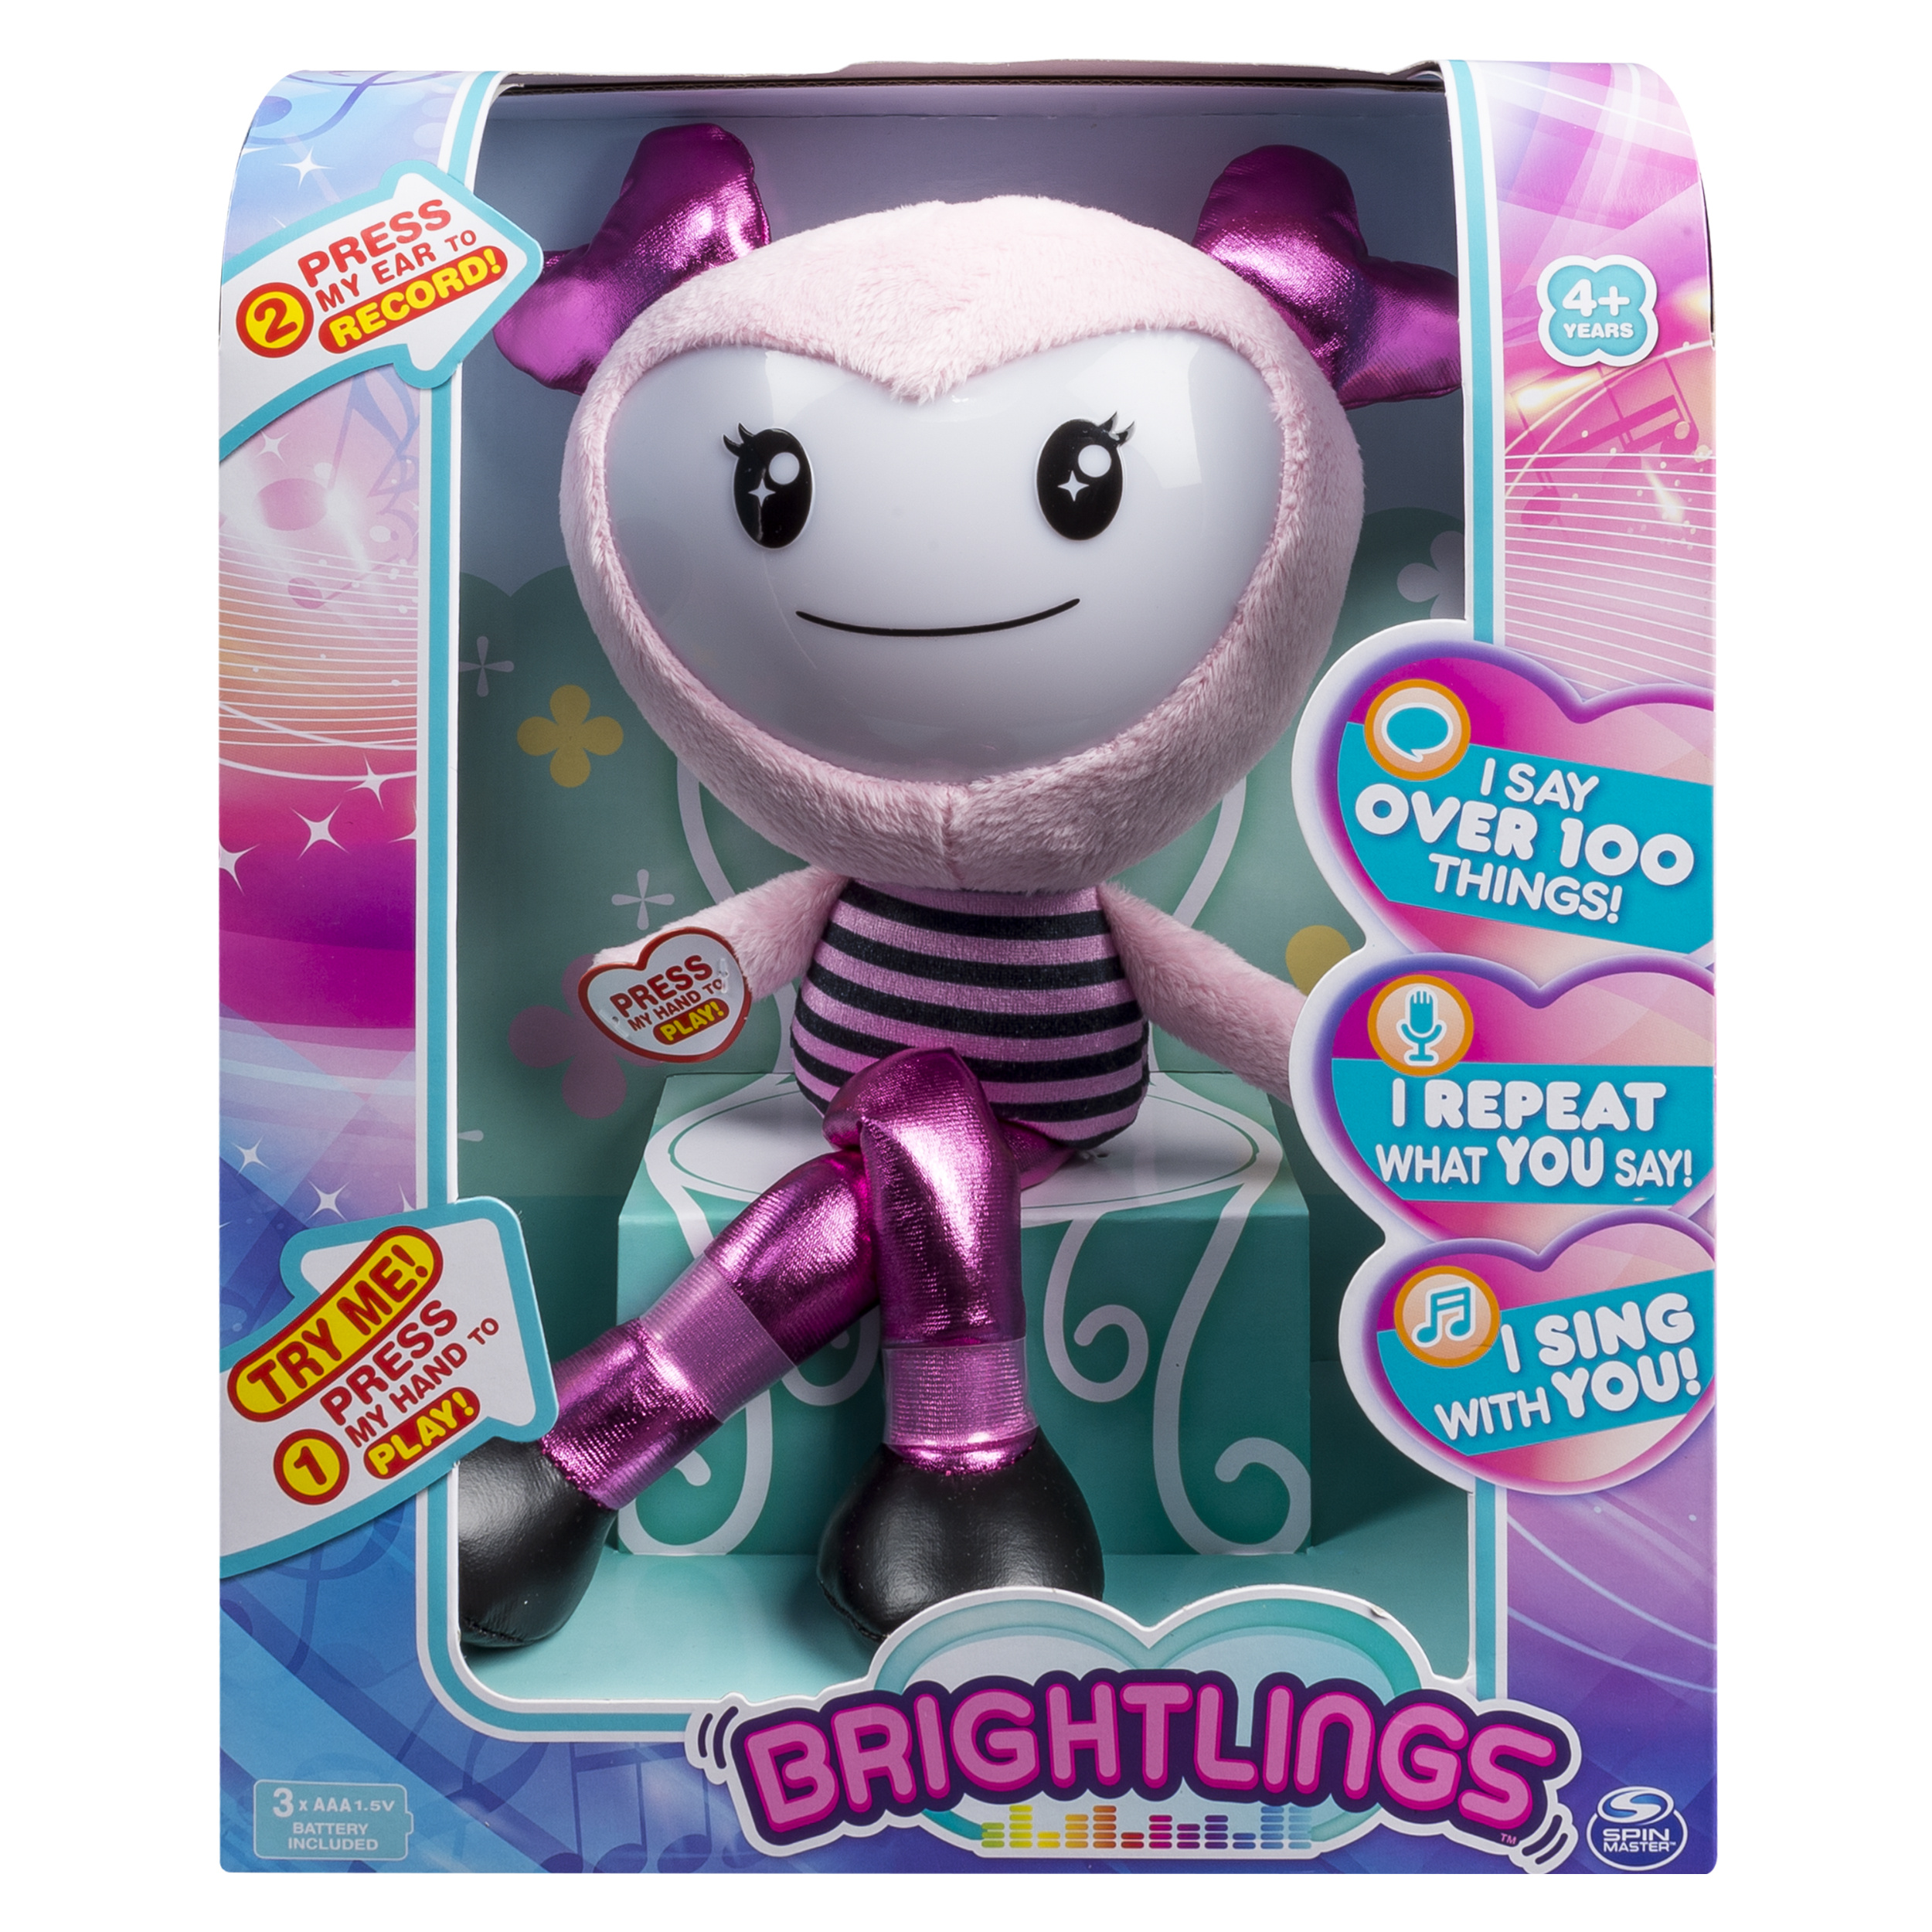 "Brightlings, Interactive Singing, Talking 15"" Plush, Pink, by Spin Master"